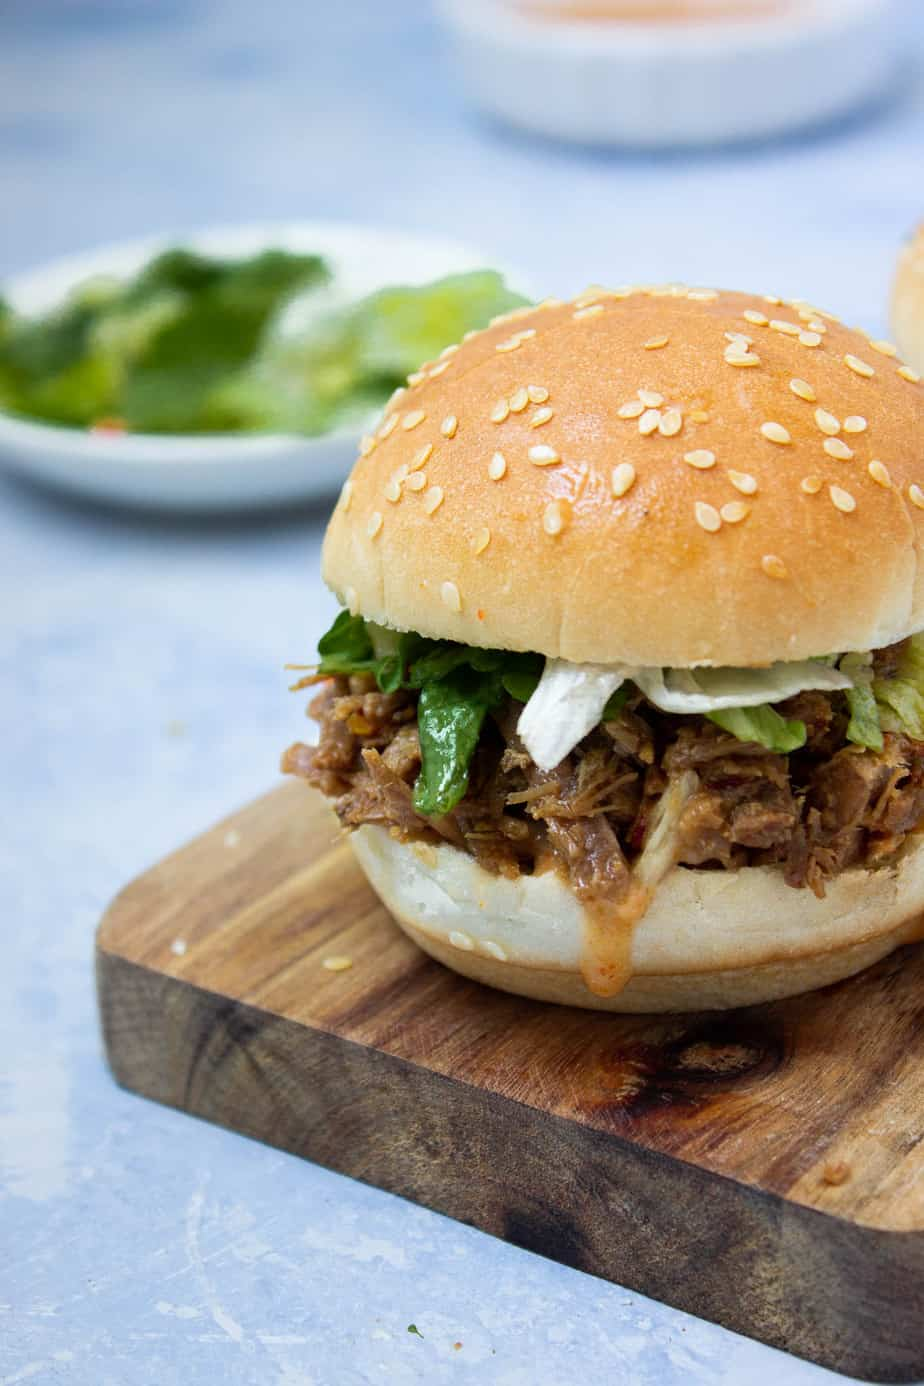 most of a pulled beef slider with lettuce, sauce and some extra greens in the background